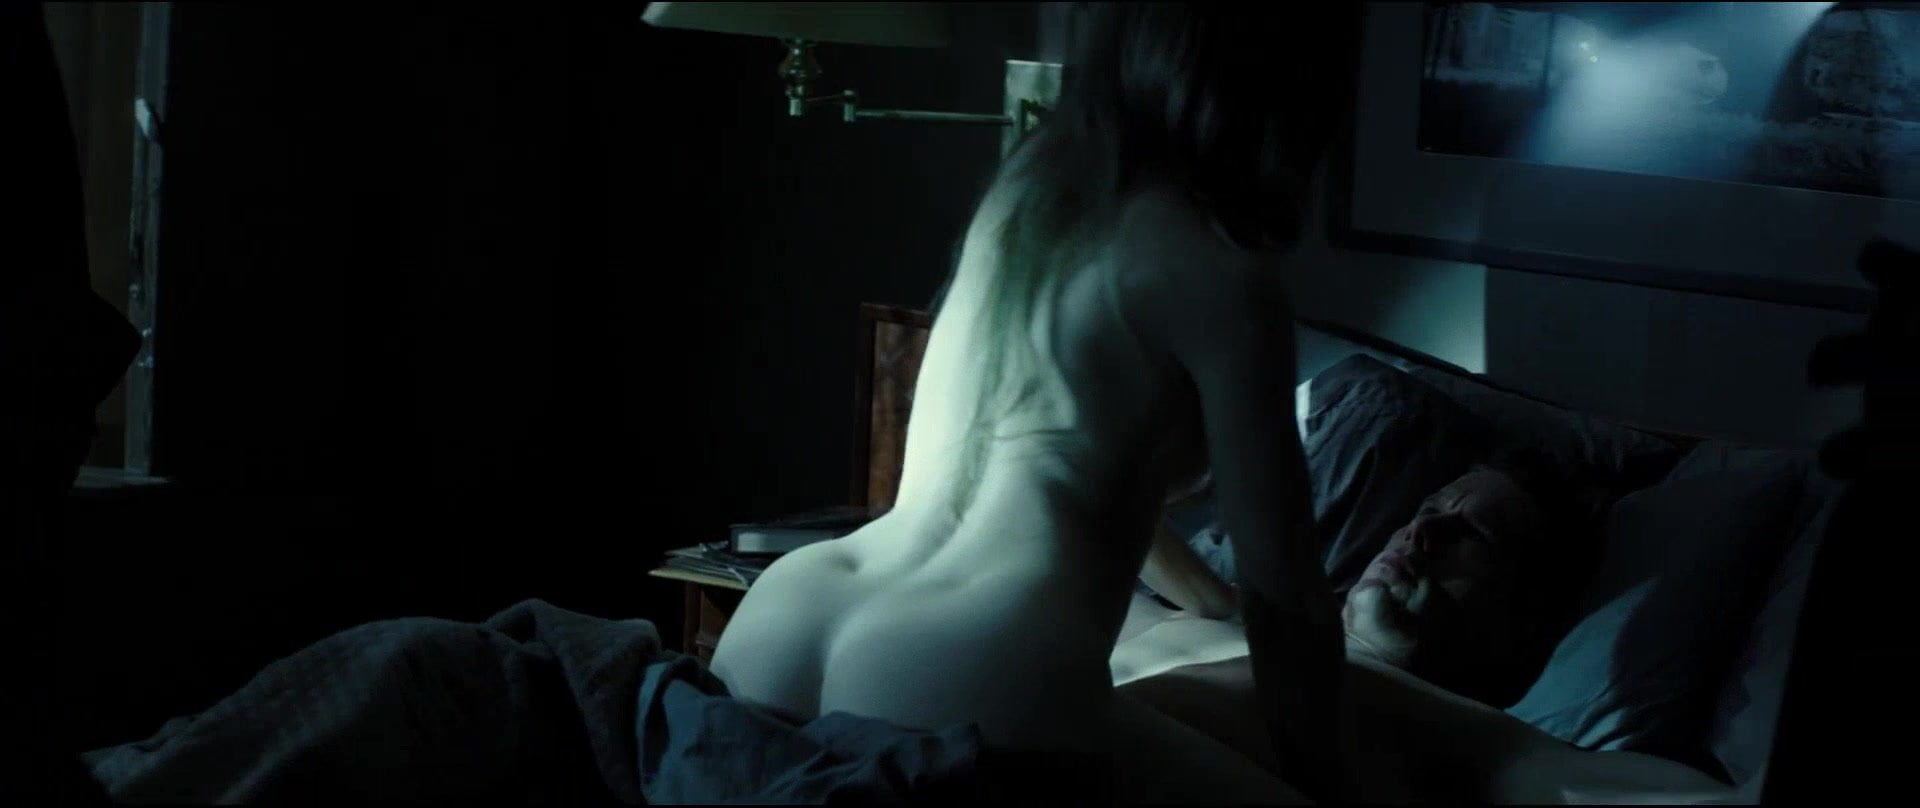 Emma watson sex pictures